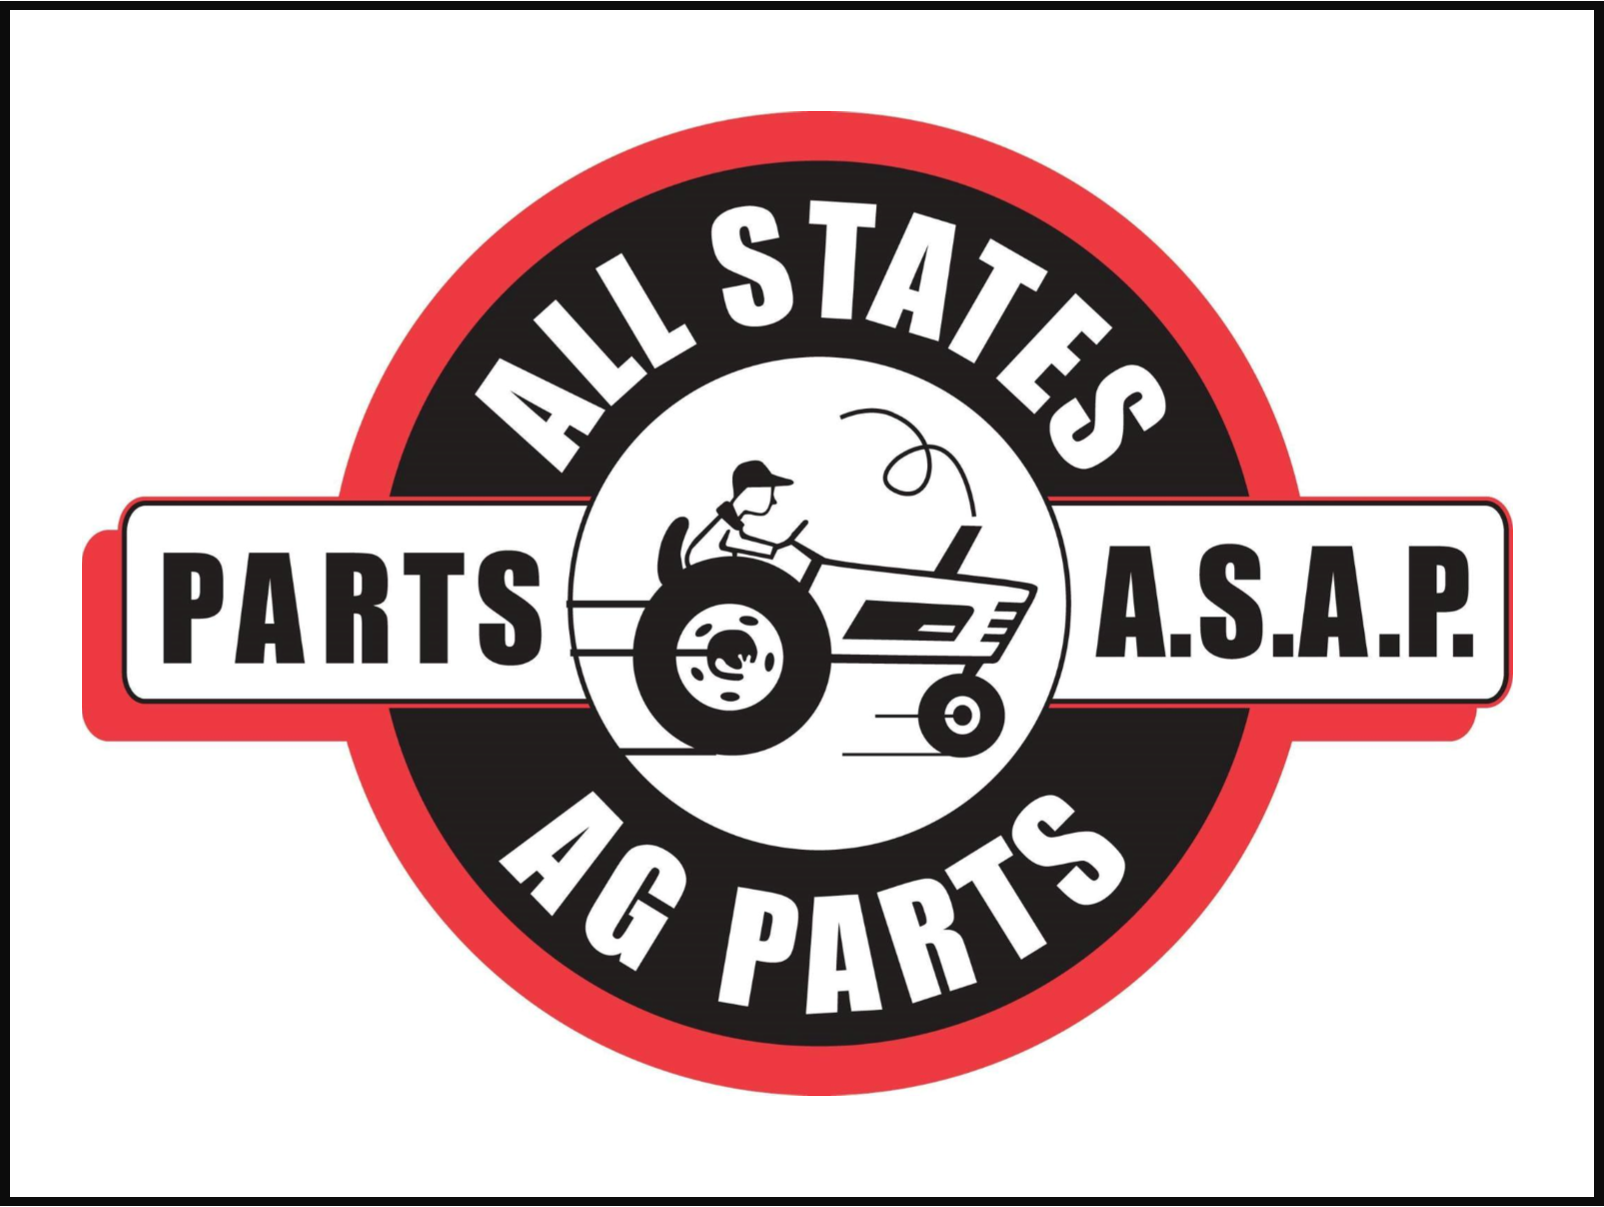 Kinderhook Buys All States Ag Parts - Private Equity Professional